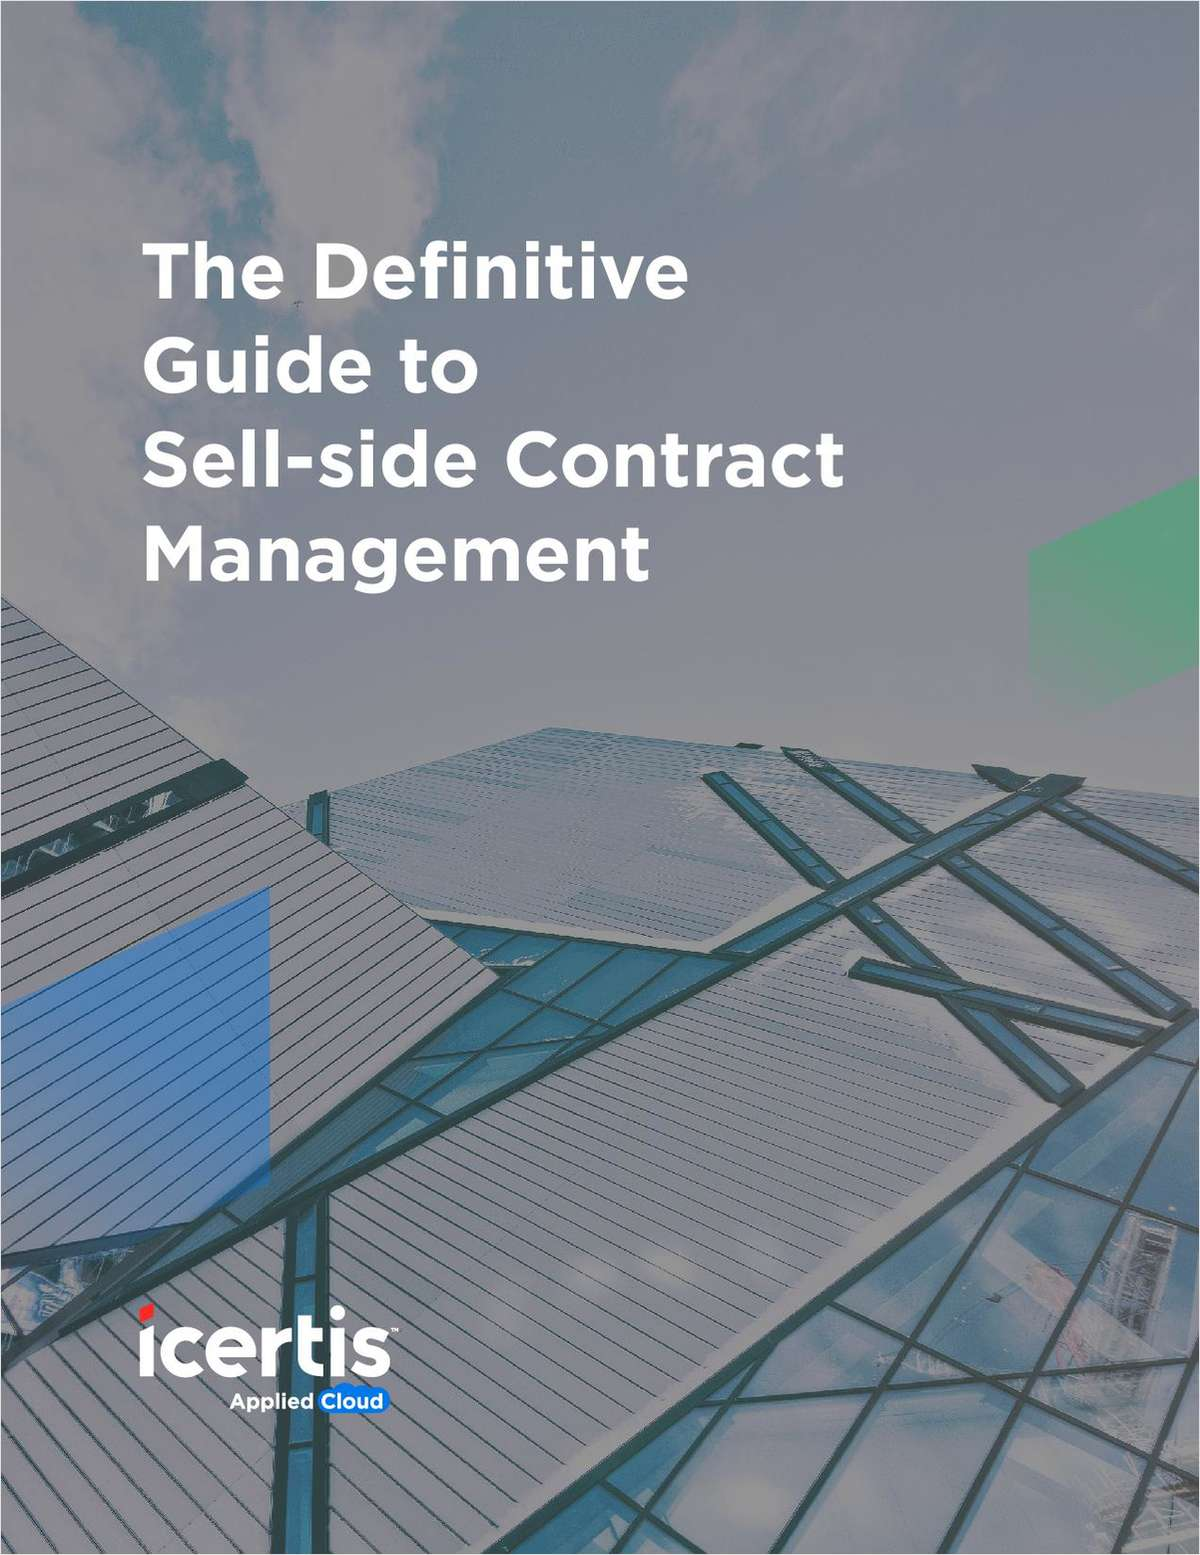 The Definitive Guide to Sell-side Contract Management